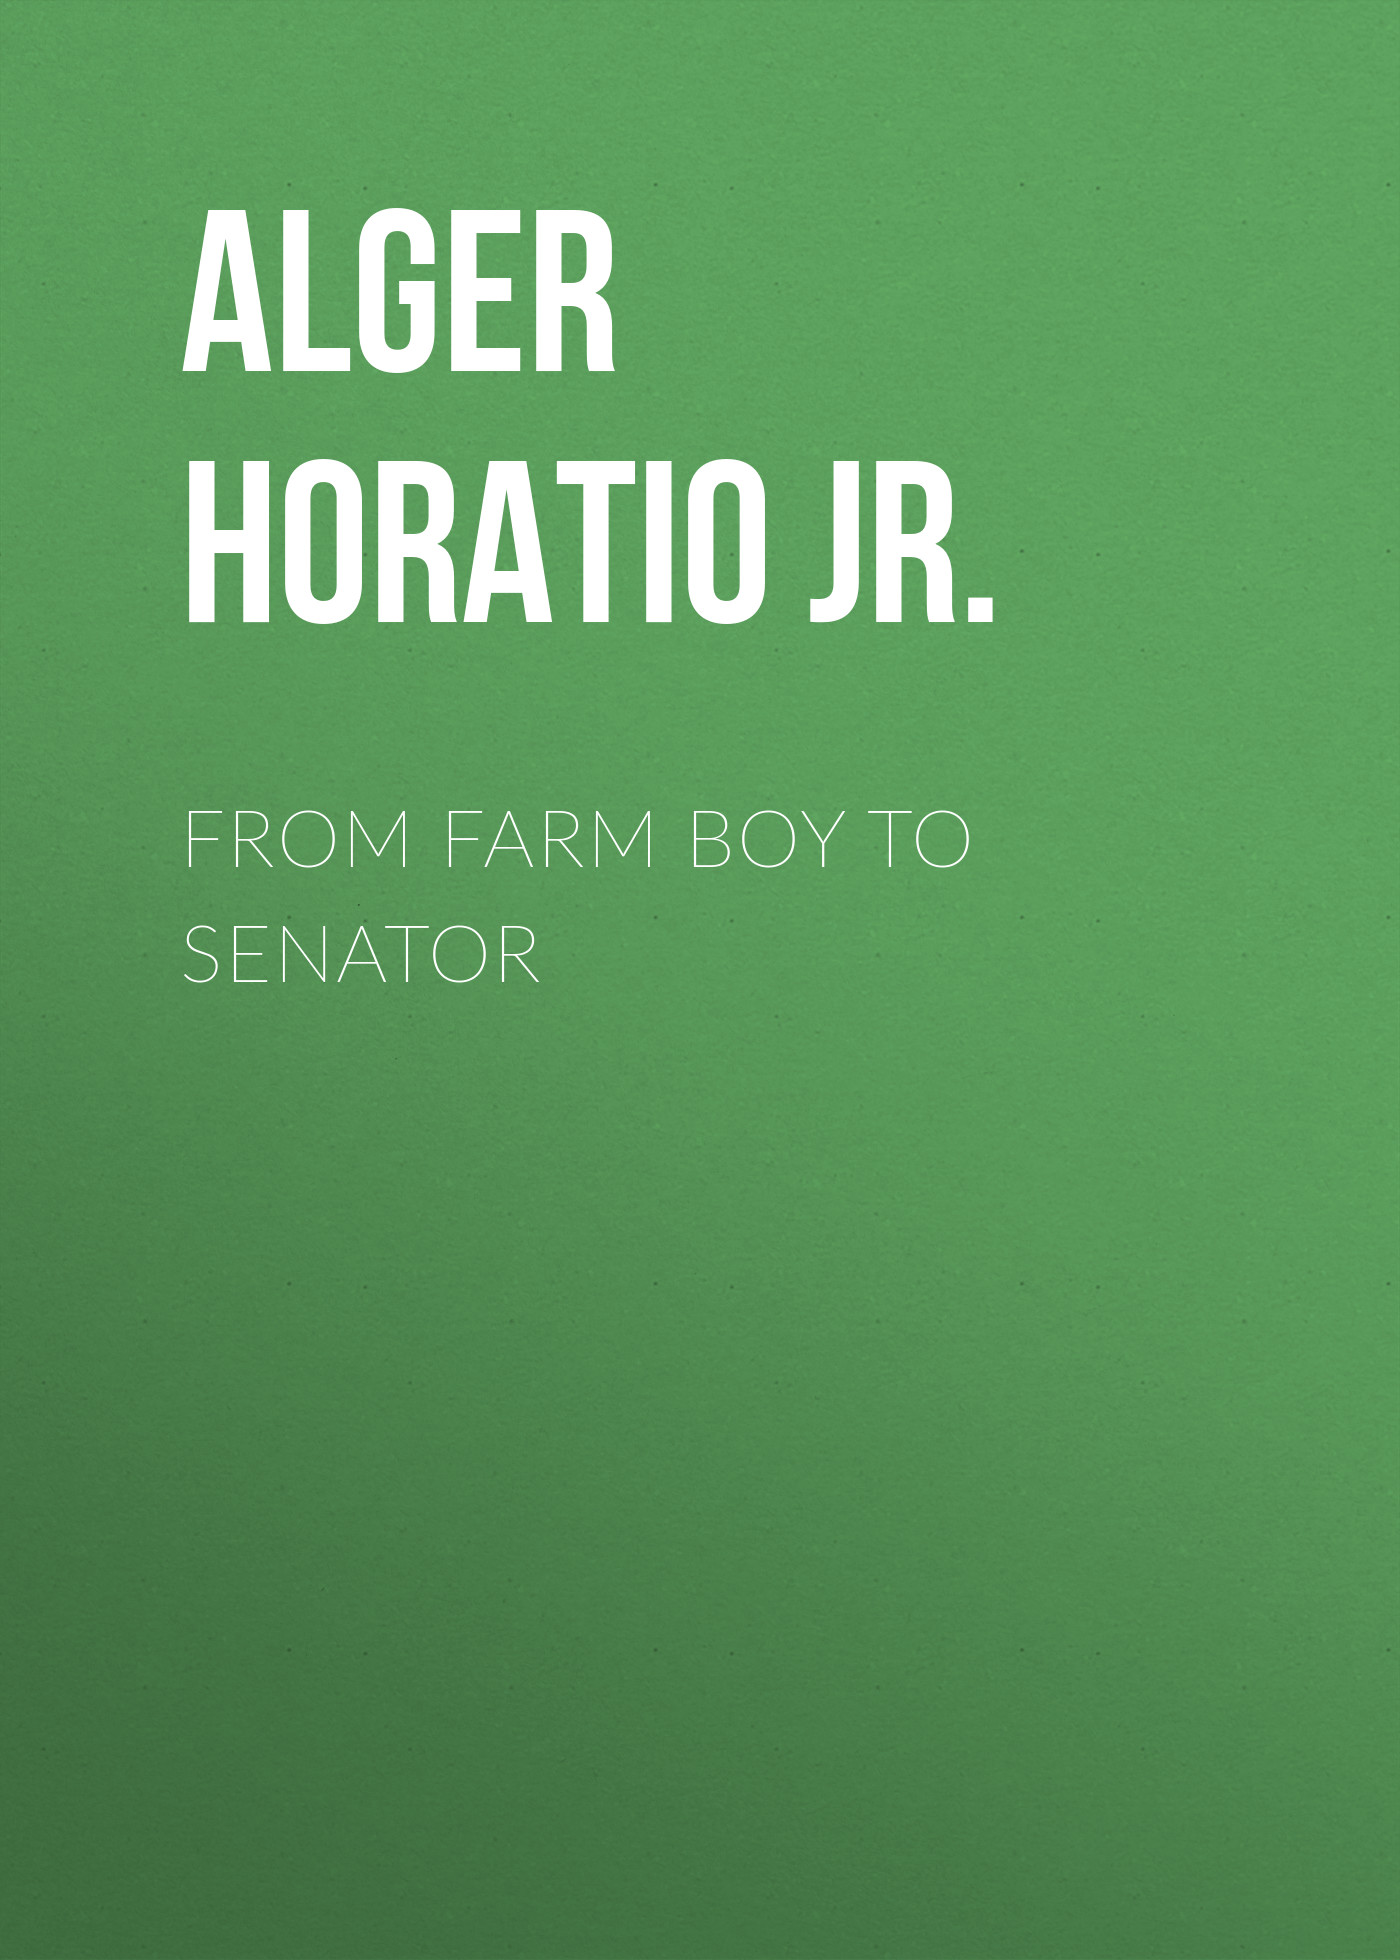 цена на Alger Horatio Jr. From Farm Boy to Senator